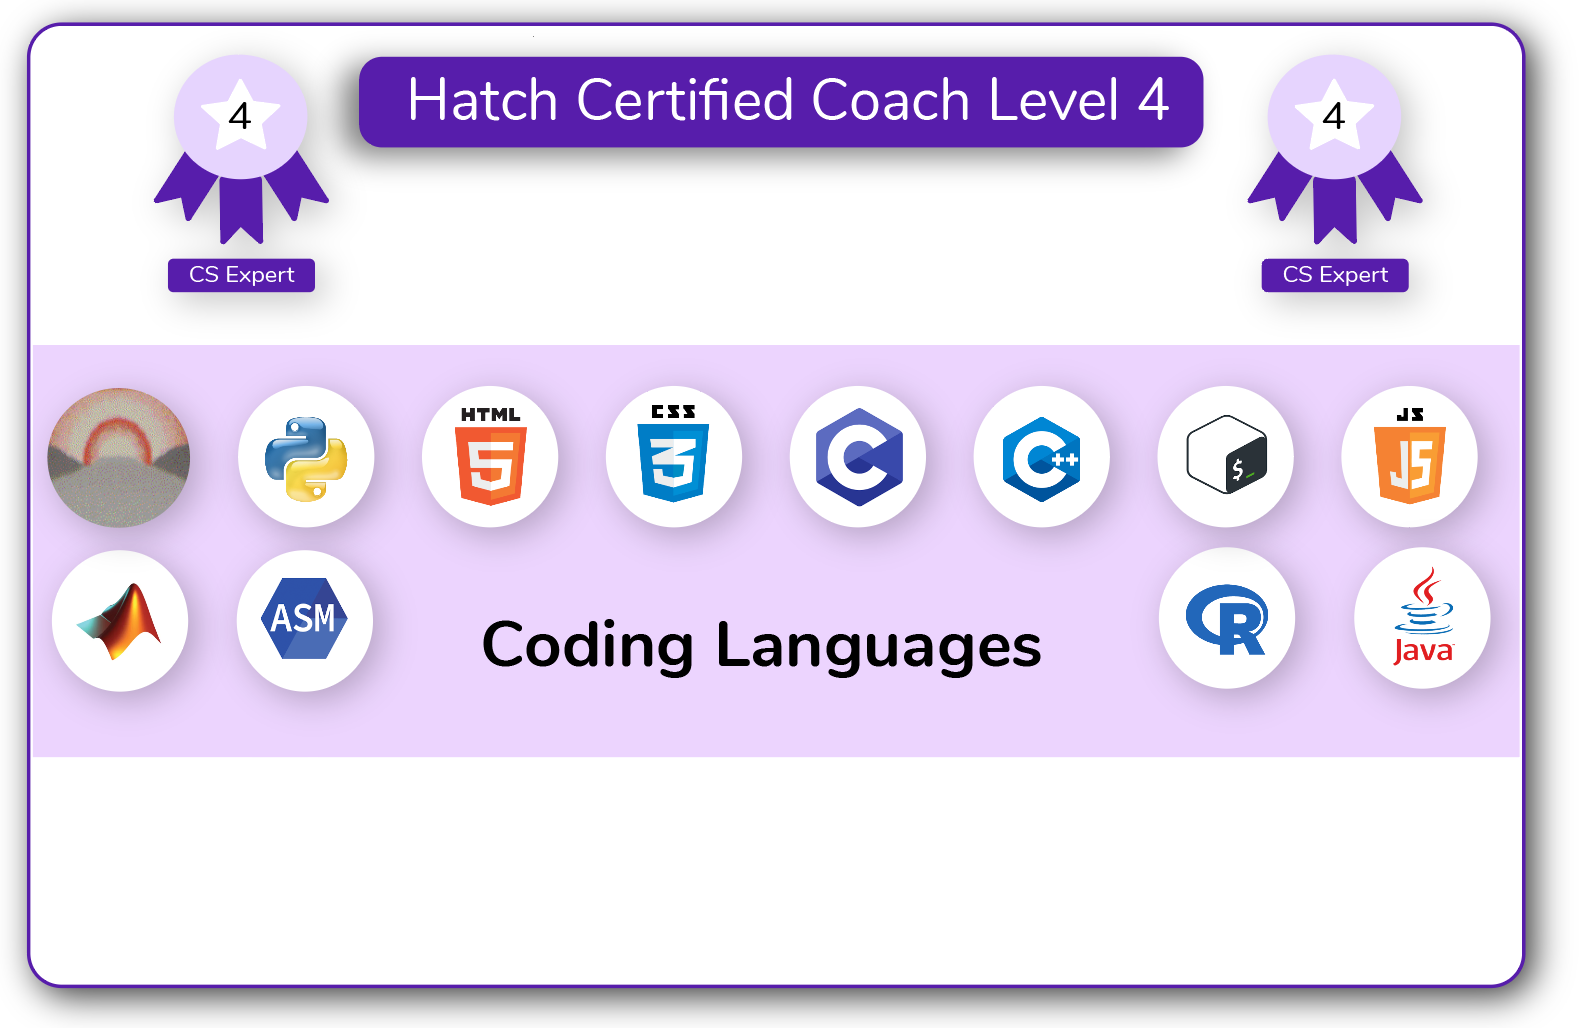 Coach Certification Level